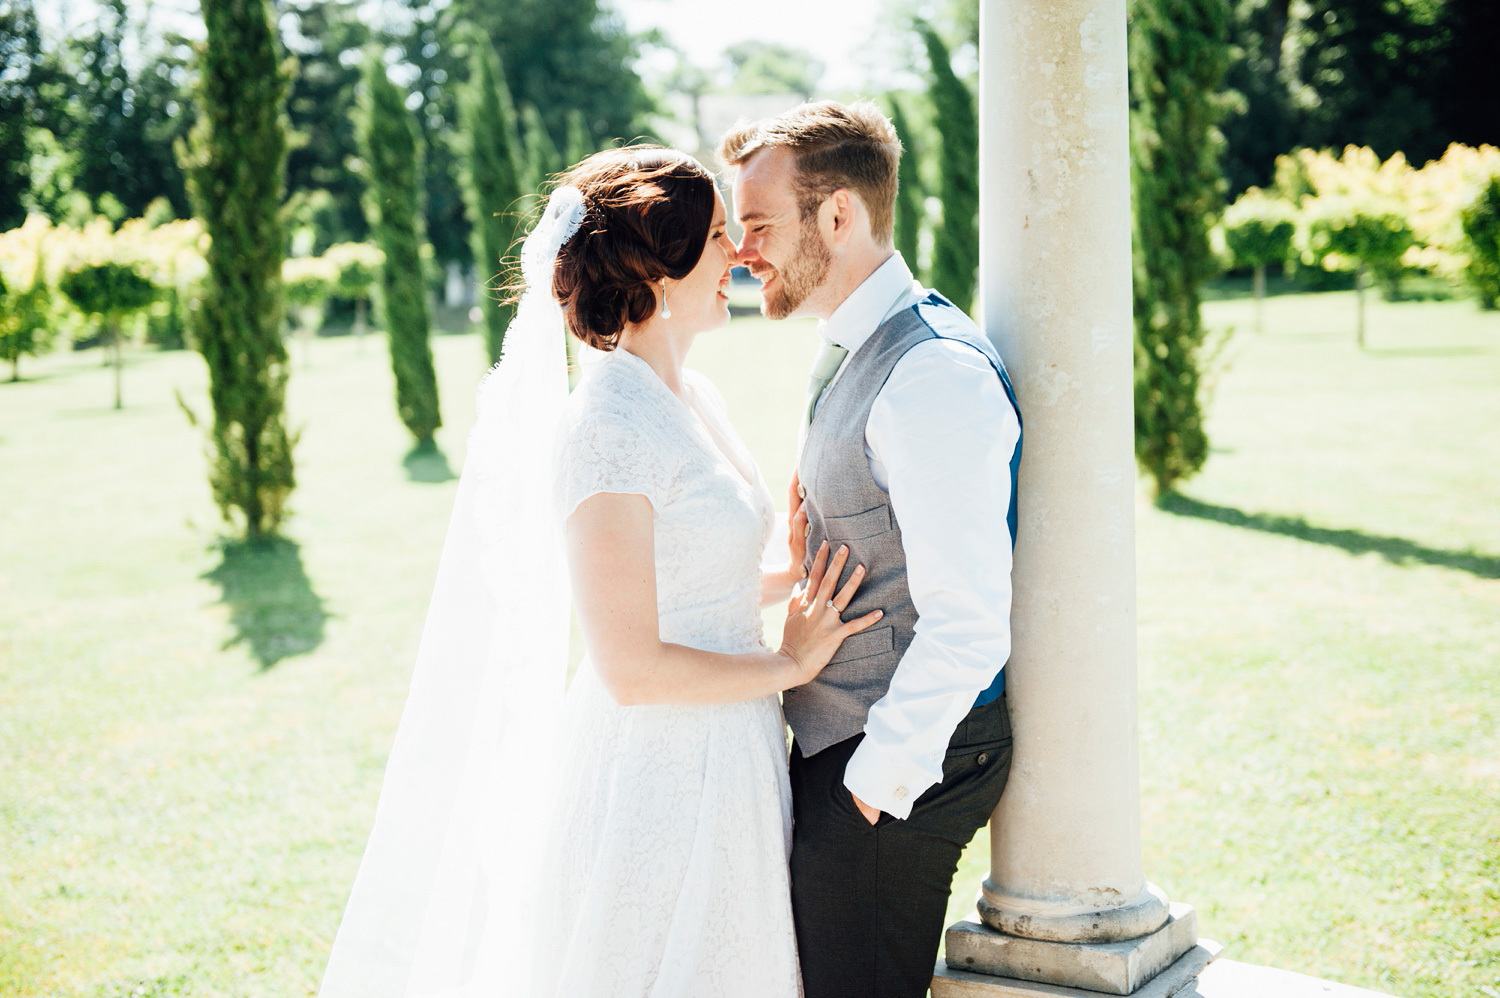 Katie_Mitchell_Photography_A&P_France_Chateau_Wedding_La_Durantie_36.jpg